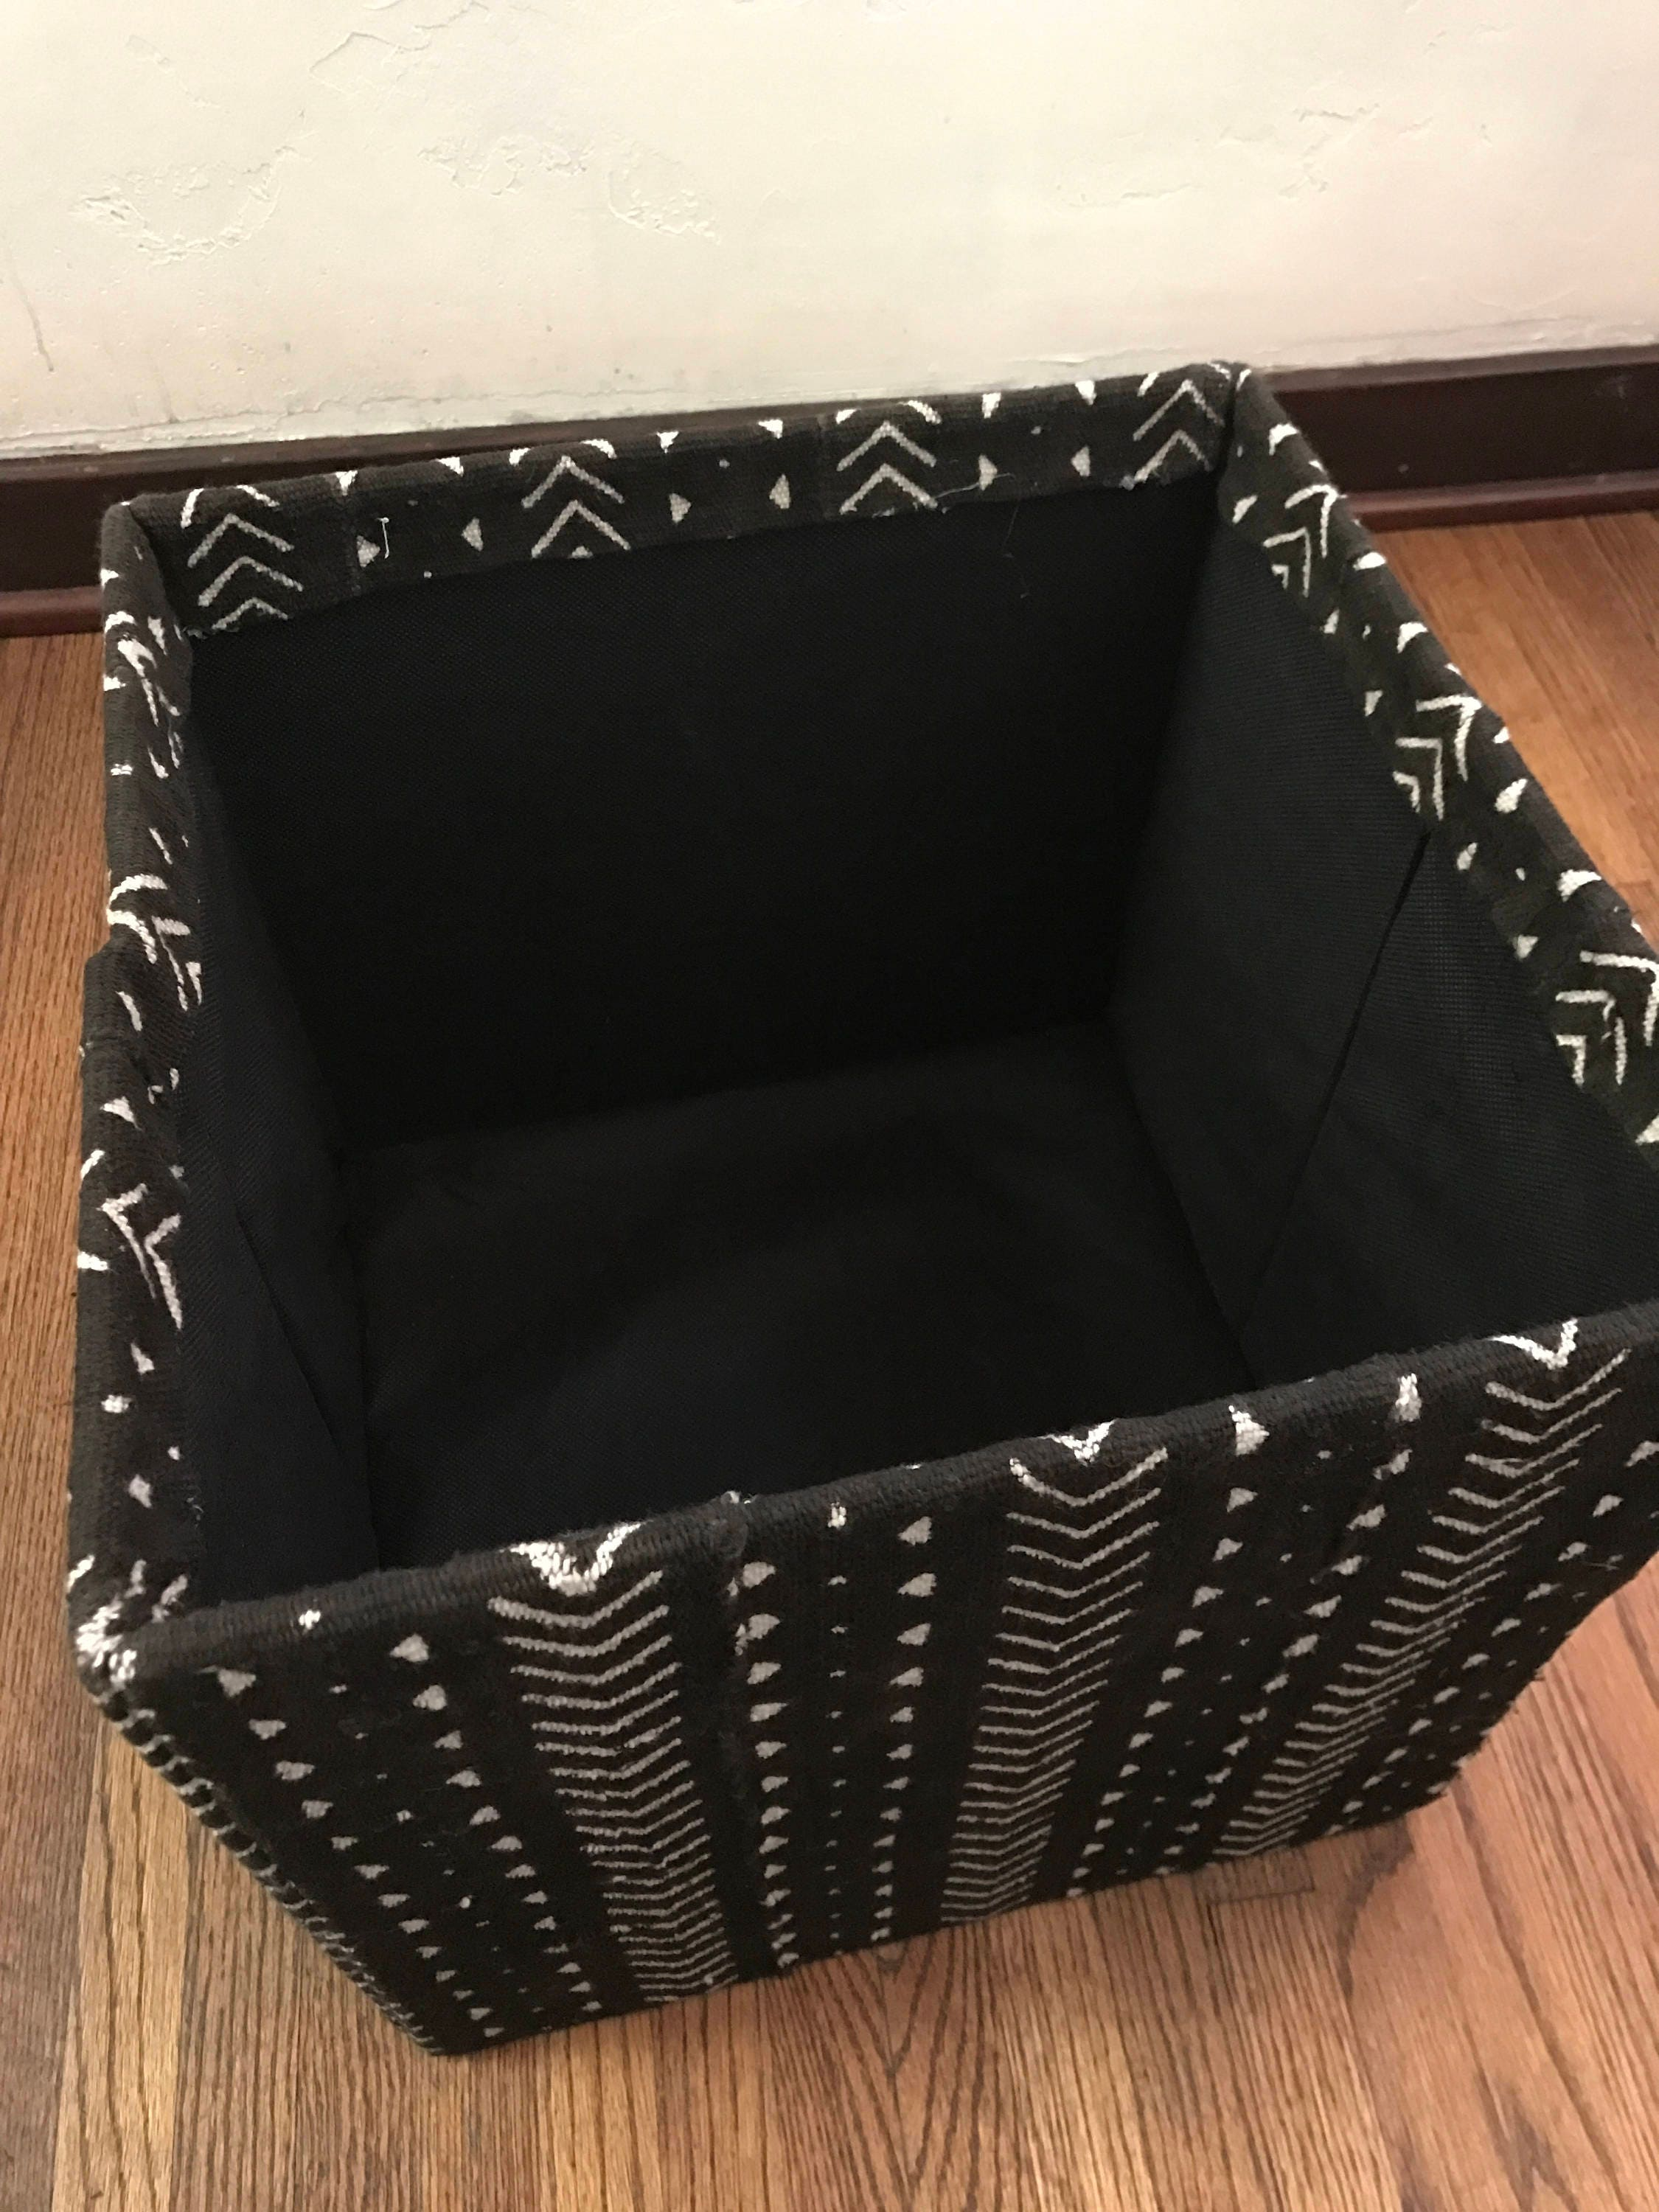 Fantastic Ottoman Storage Cube African Mudcloth With Lid Andrewgaddart Wooden Chair Designs For Living Room Andrewgaddartcom